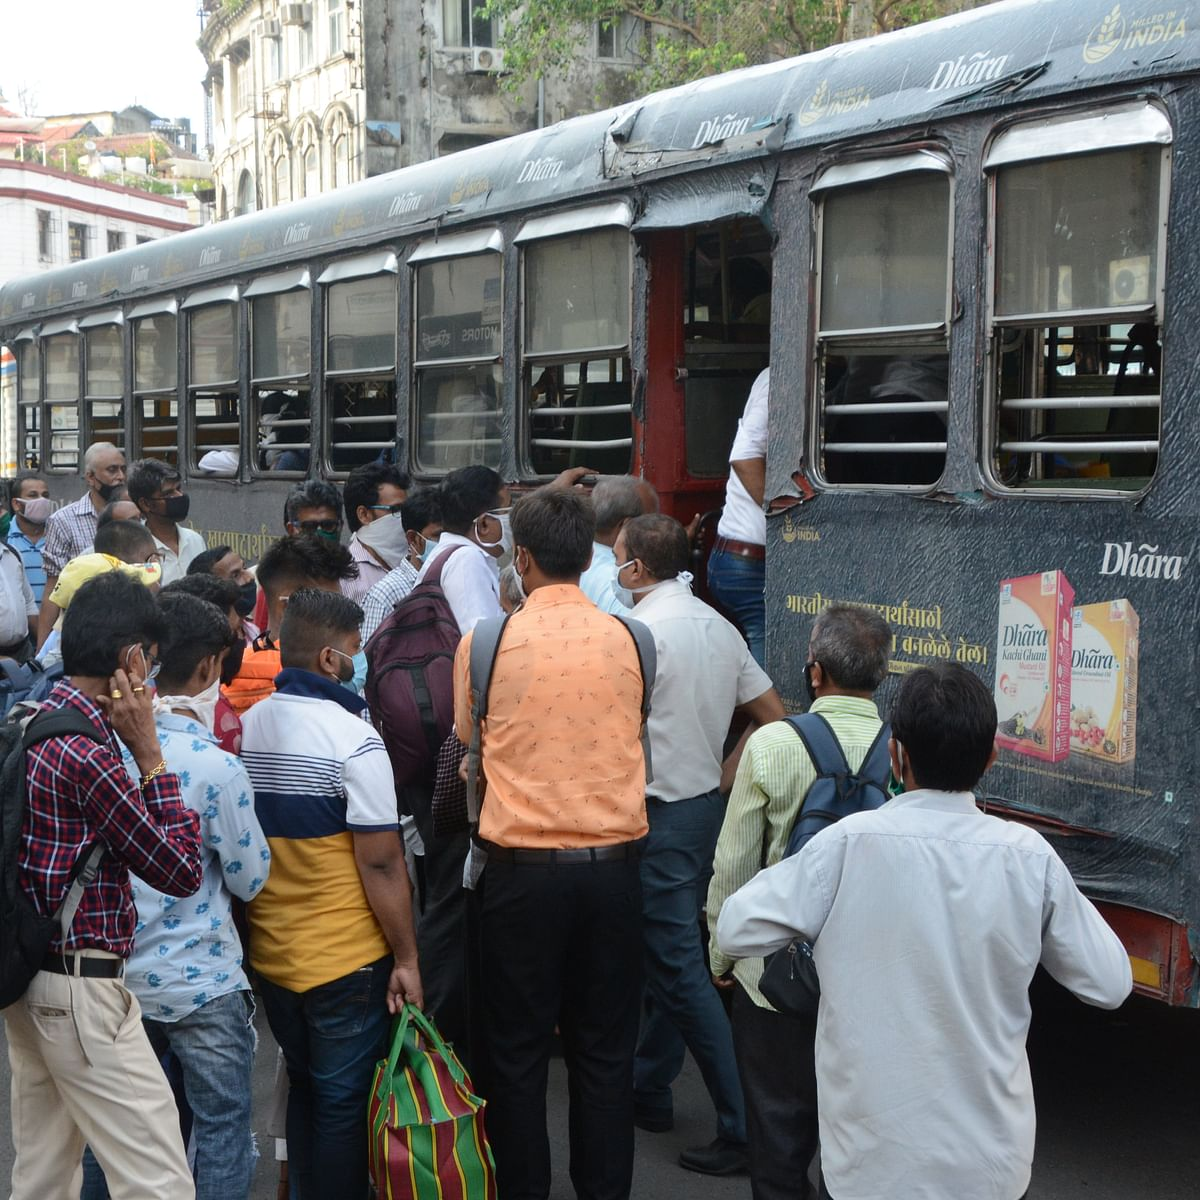 Mumbai: With local train services set to resume, BEST mulls adding more buses on short 'point-to-point' routes